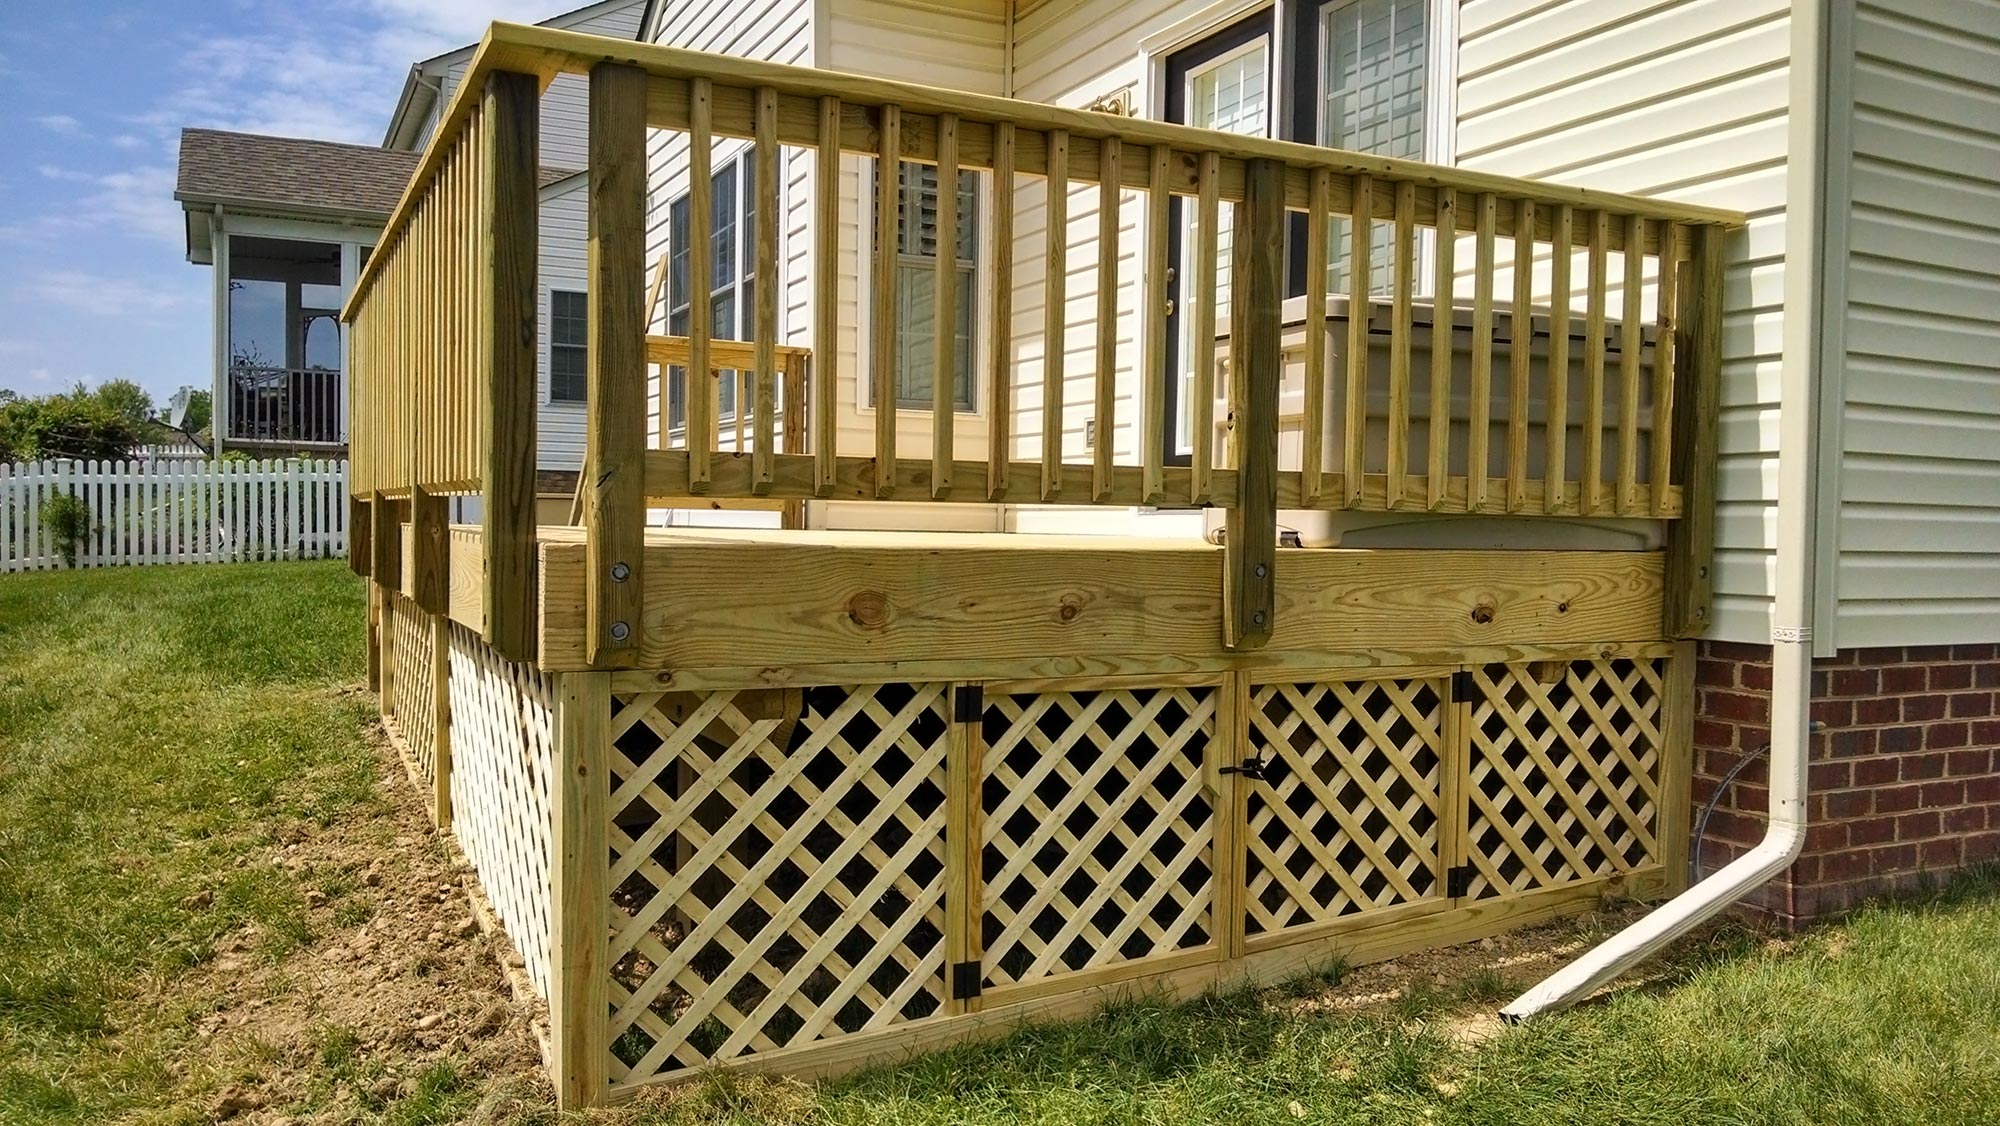 Deck and storage shed midlothian rva remodeling llc for Shed deck plans